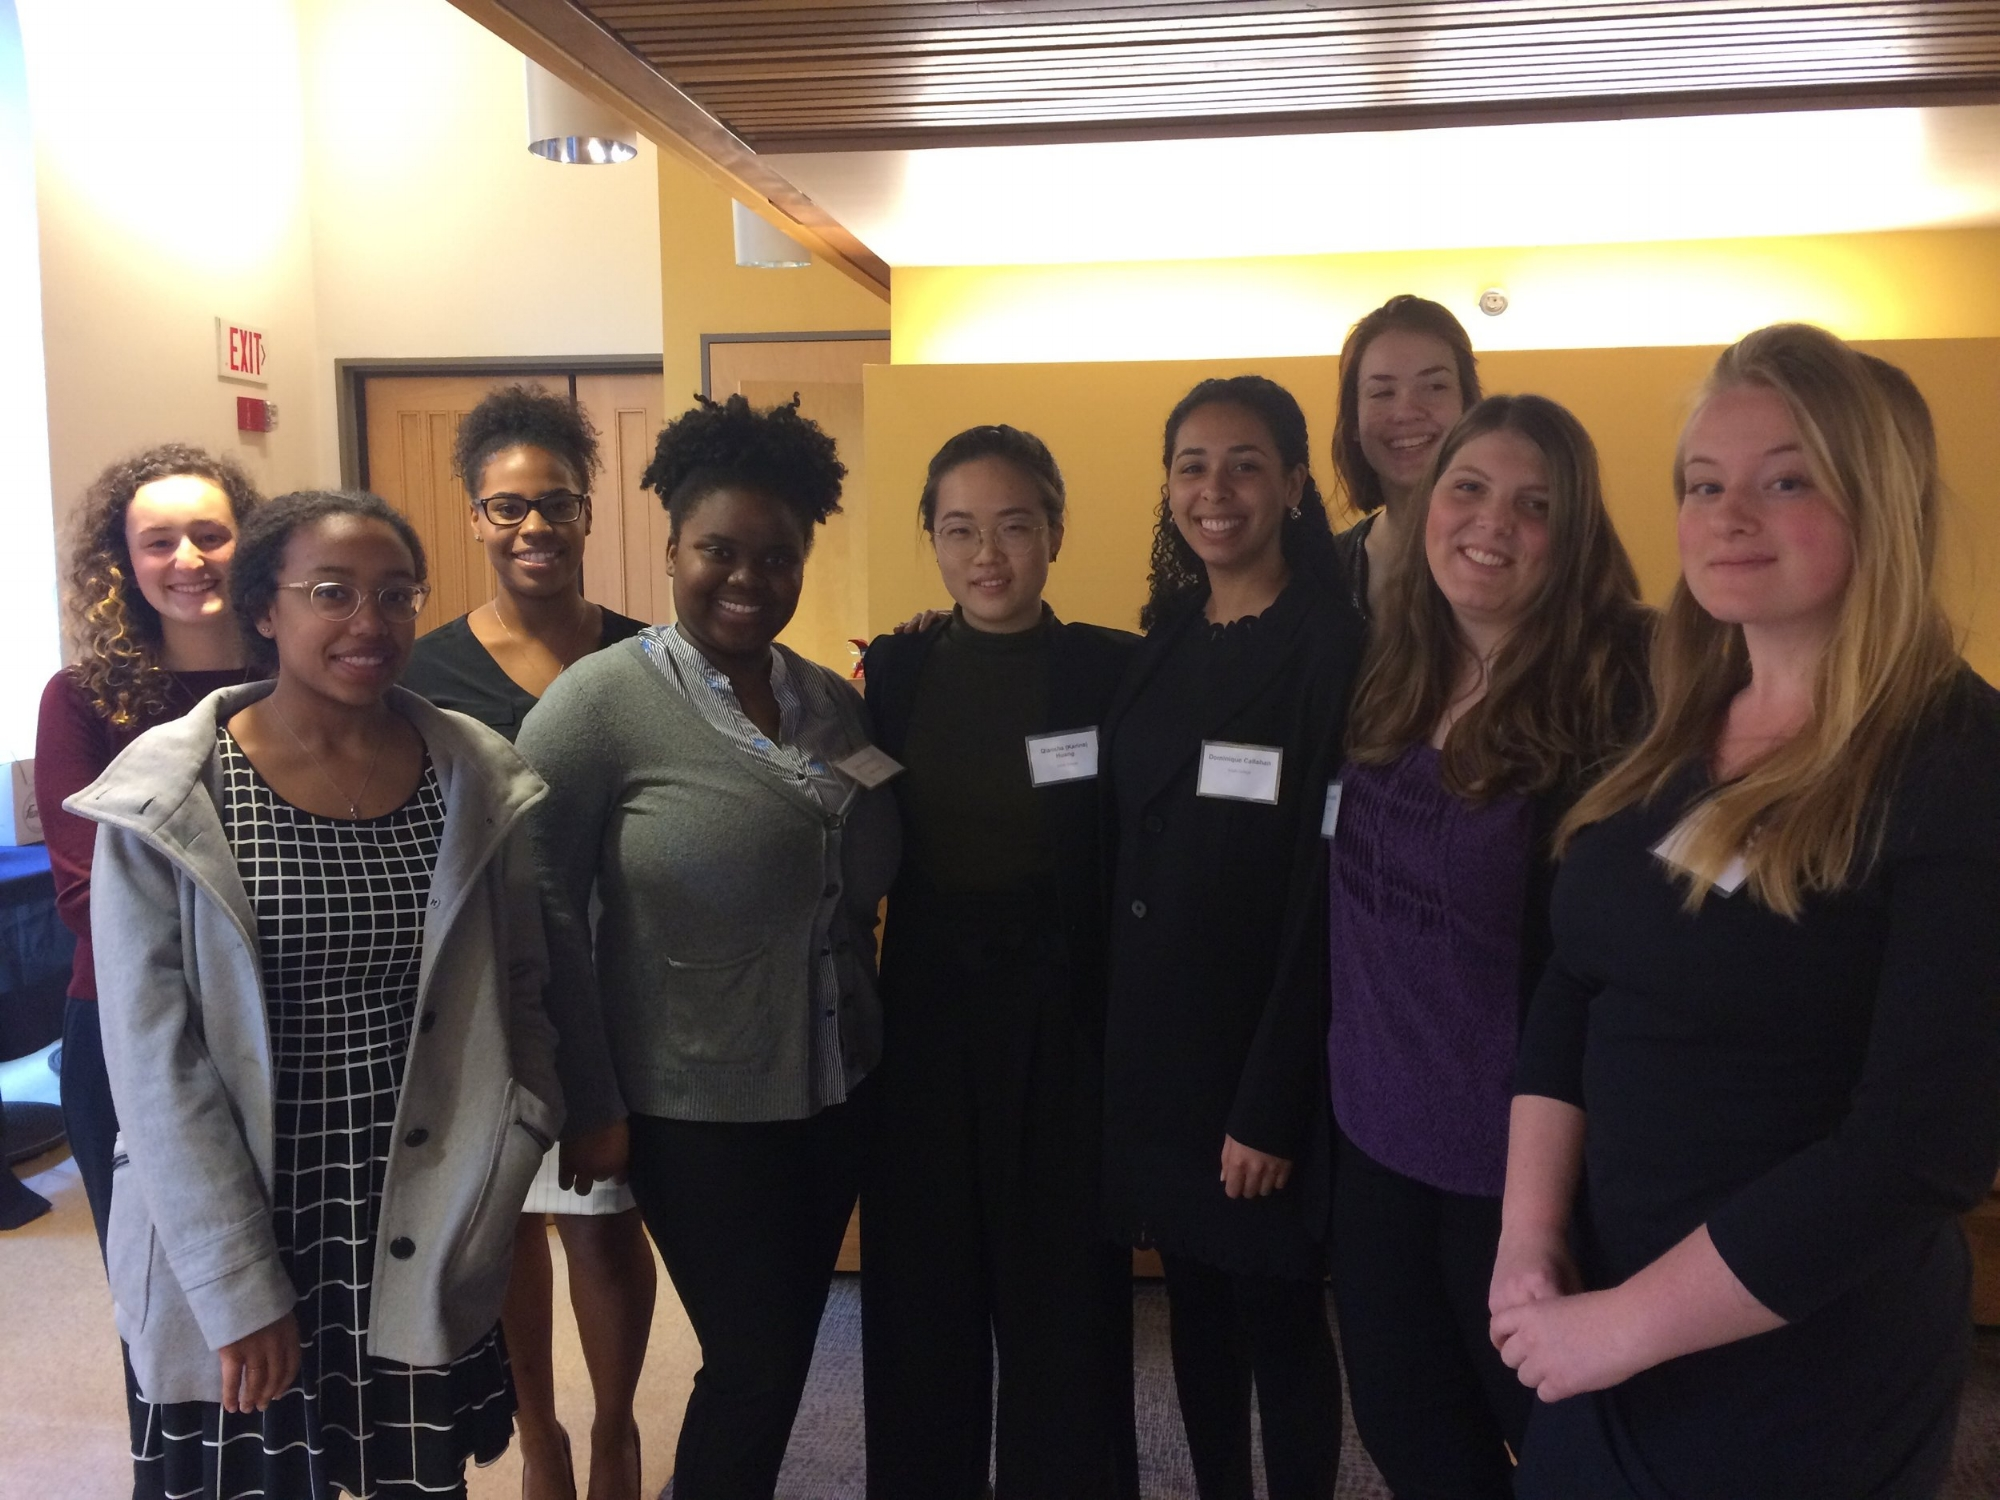 Front row (left to right): Joarvi Edwards, Sasha Shrouder, Karina Huang '18. Dominique Callahan '18, Sarah Leandro, McKenna Hendrickson                    Back row left to right): Maise Smith, Lauren Tinglin, Callie Slevin